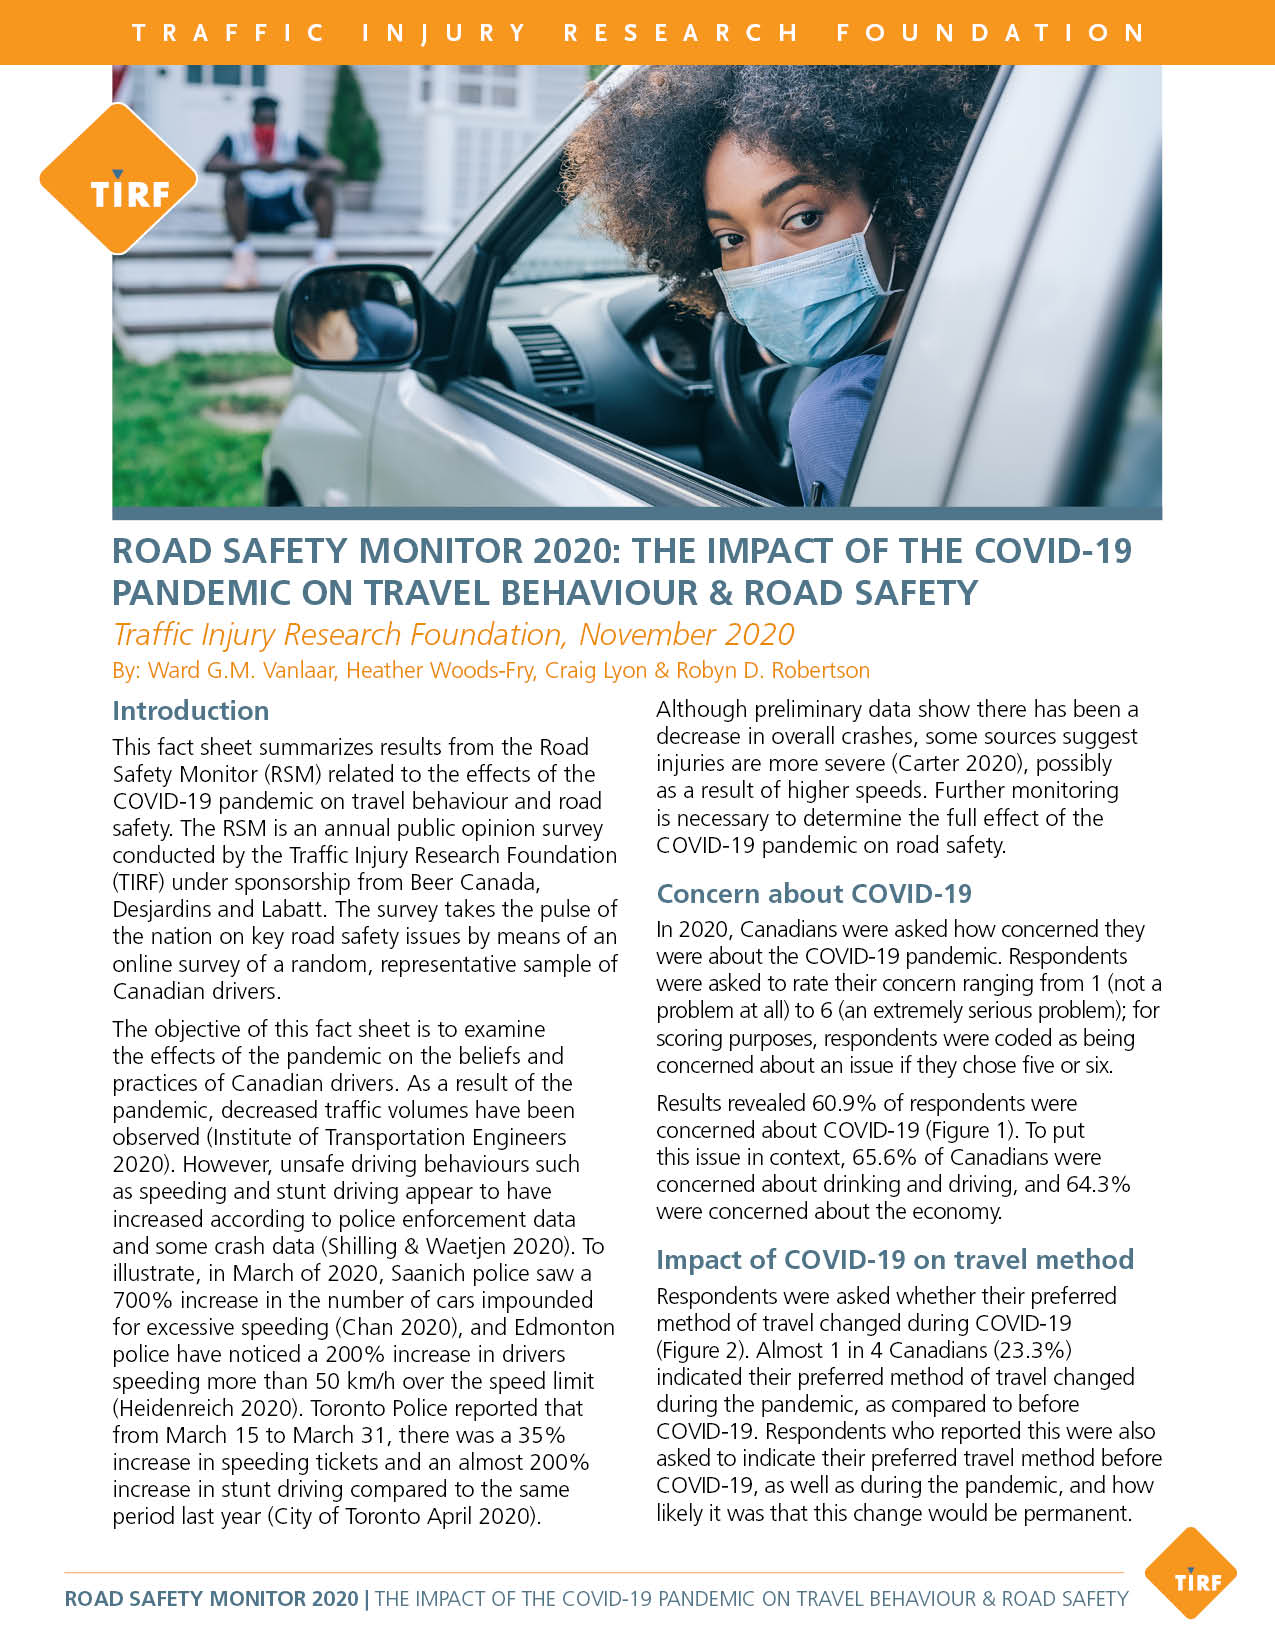 Road Safety Monitor 2020: The Impact of the COVID-19 Pandemic on Travel Behaviour & Road Safety